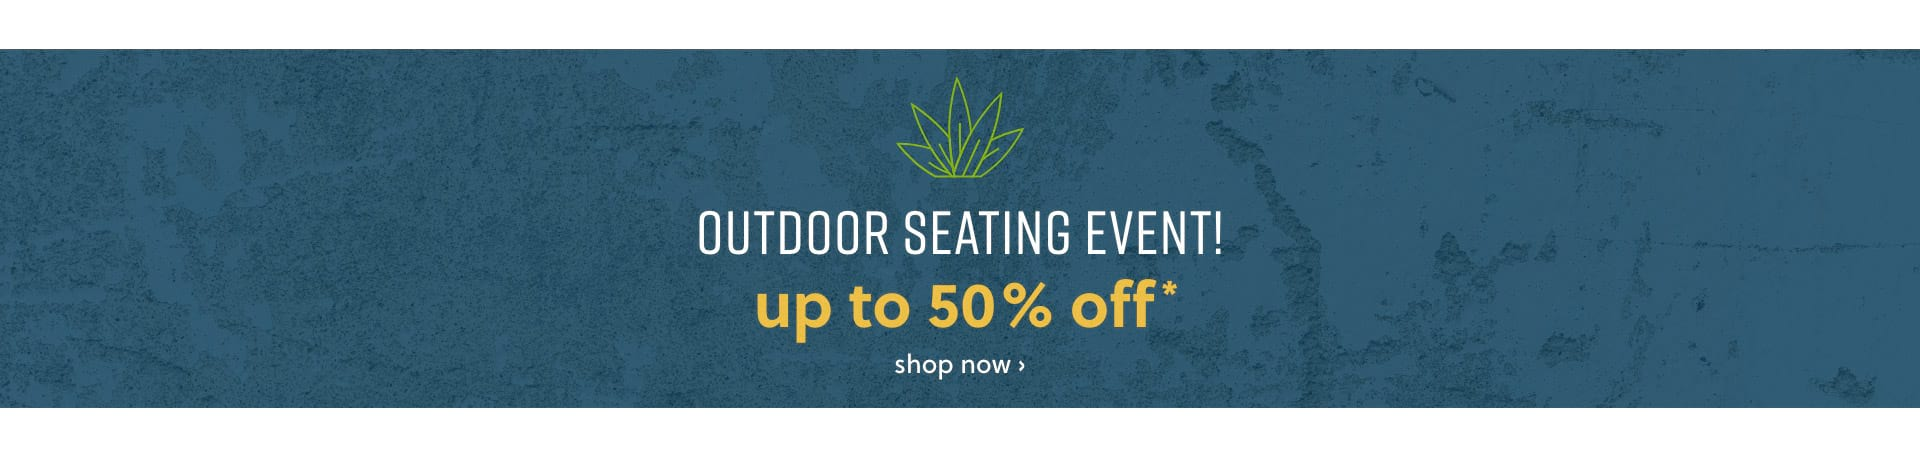 Outdoor Seating Event up to 50% off*